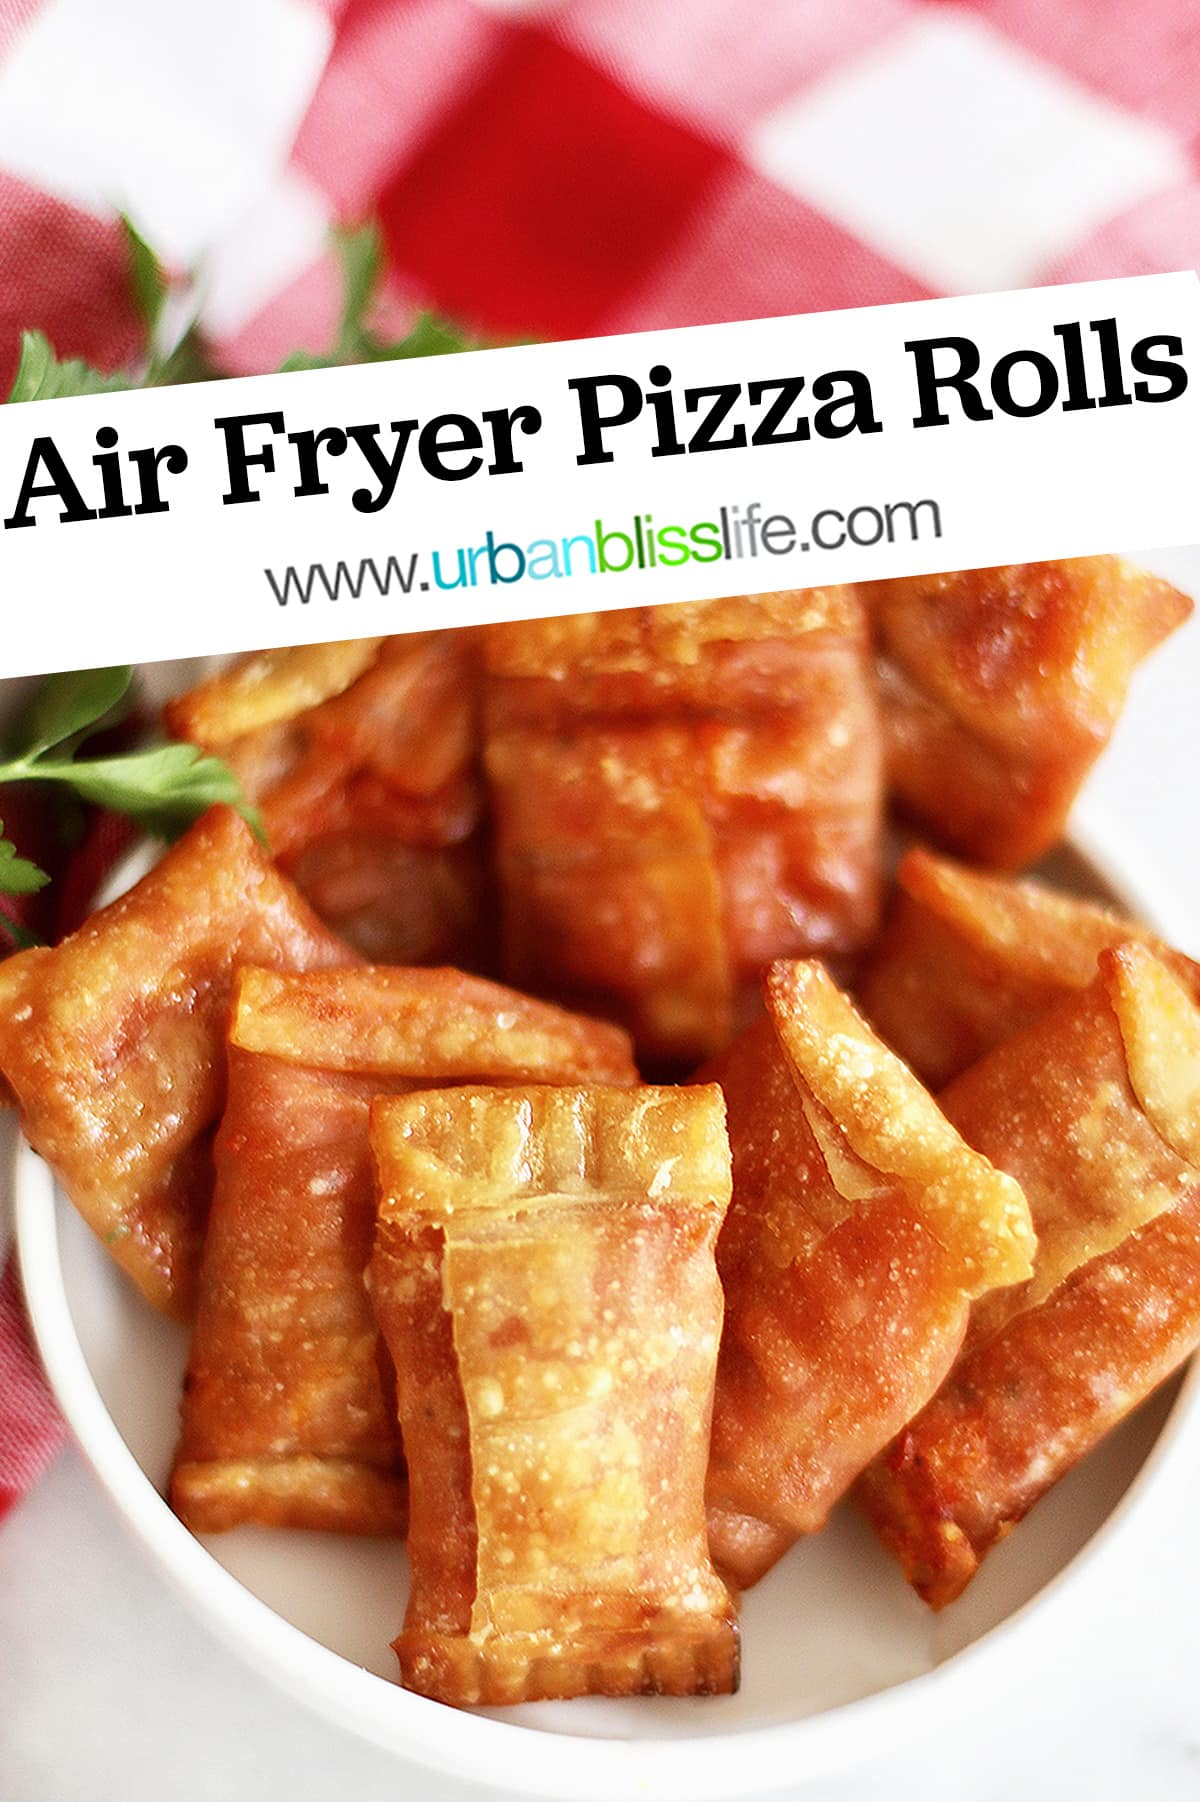 air fryer pizza rolls with title text overlay